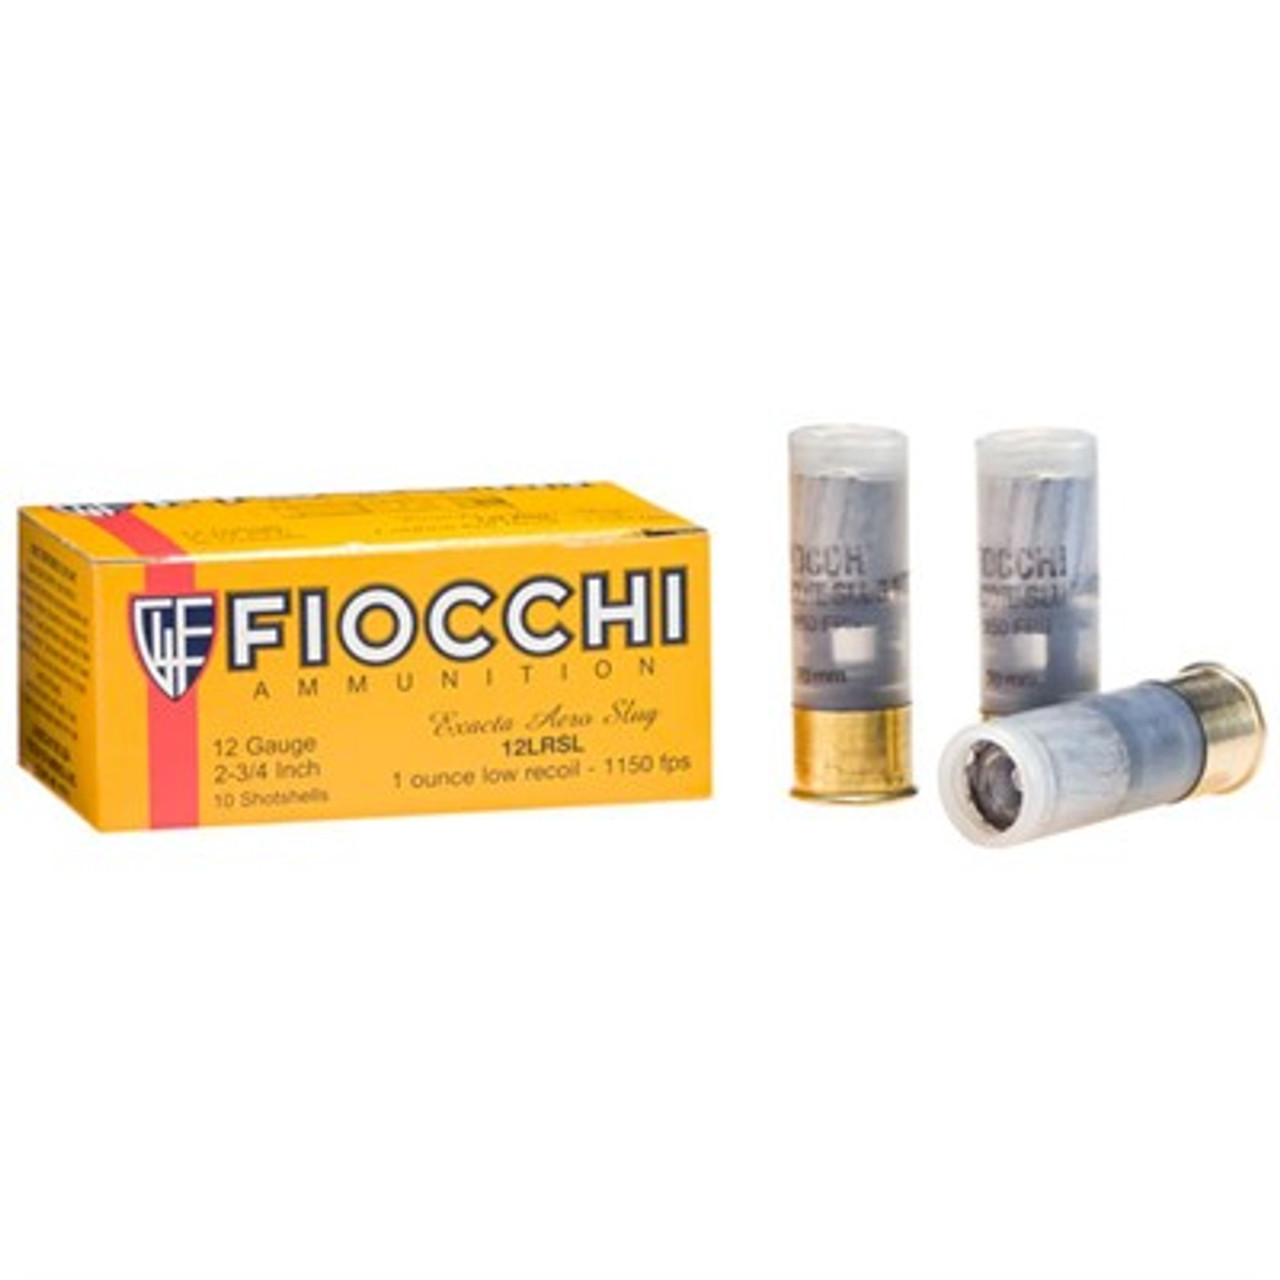 "Fiocchi Low Recoil Ammunition 12GA 2.75"" 1OZ 10 Rounds / box"